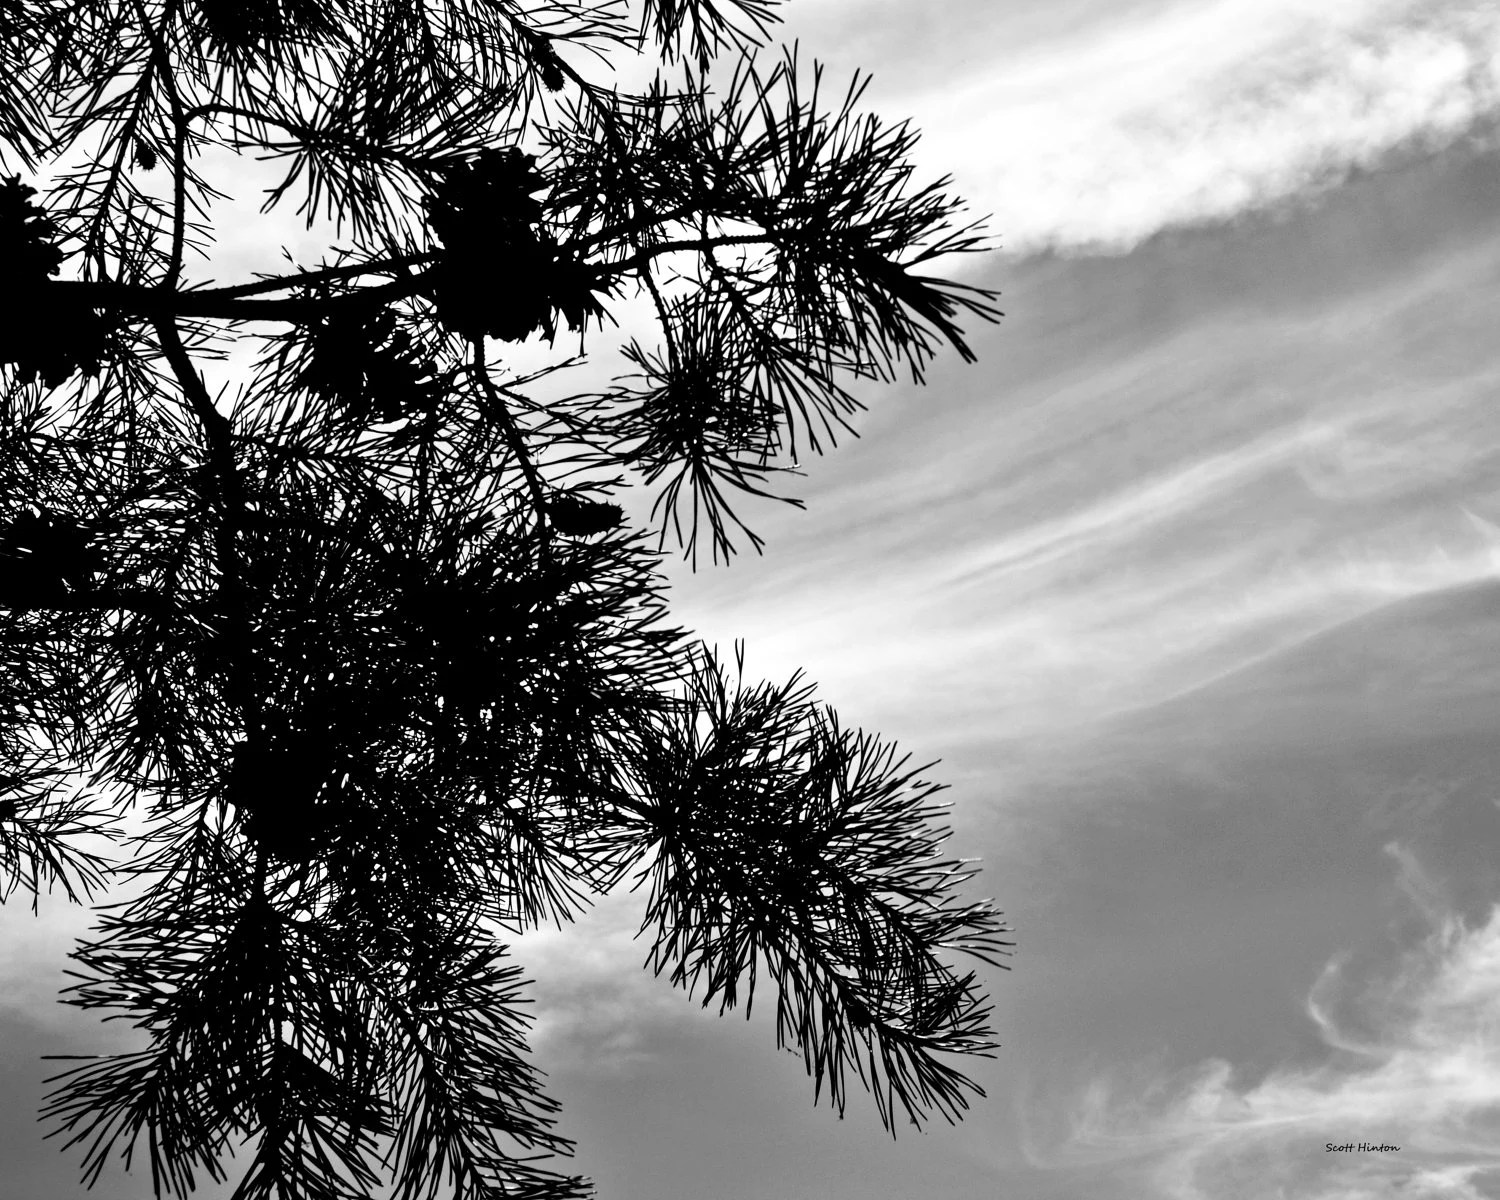 Pine Tree Silhouetted in the Clouds 8x10 Black and White - HintonPhotography